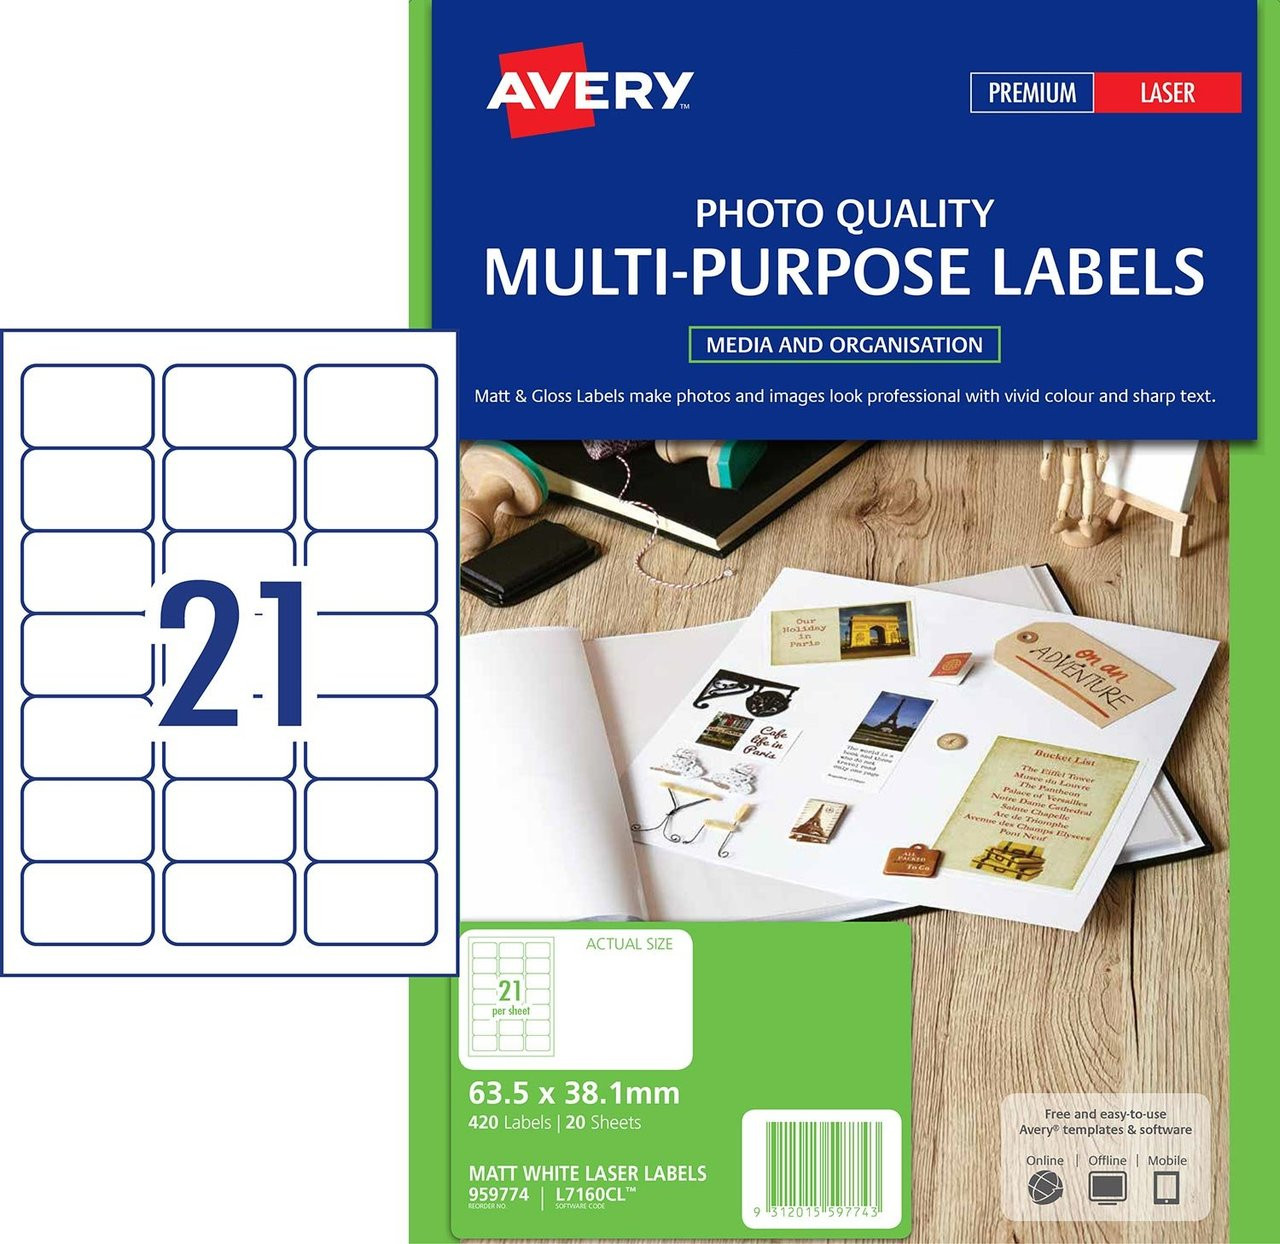 AVERY 959774 MATT WHITE PHOTO QUALITY LABELS - L7160CL - 420/PACK - 63 5 X  38 1 MM |21UP